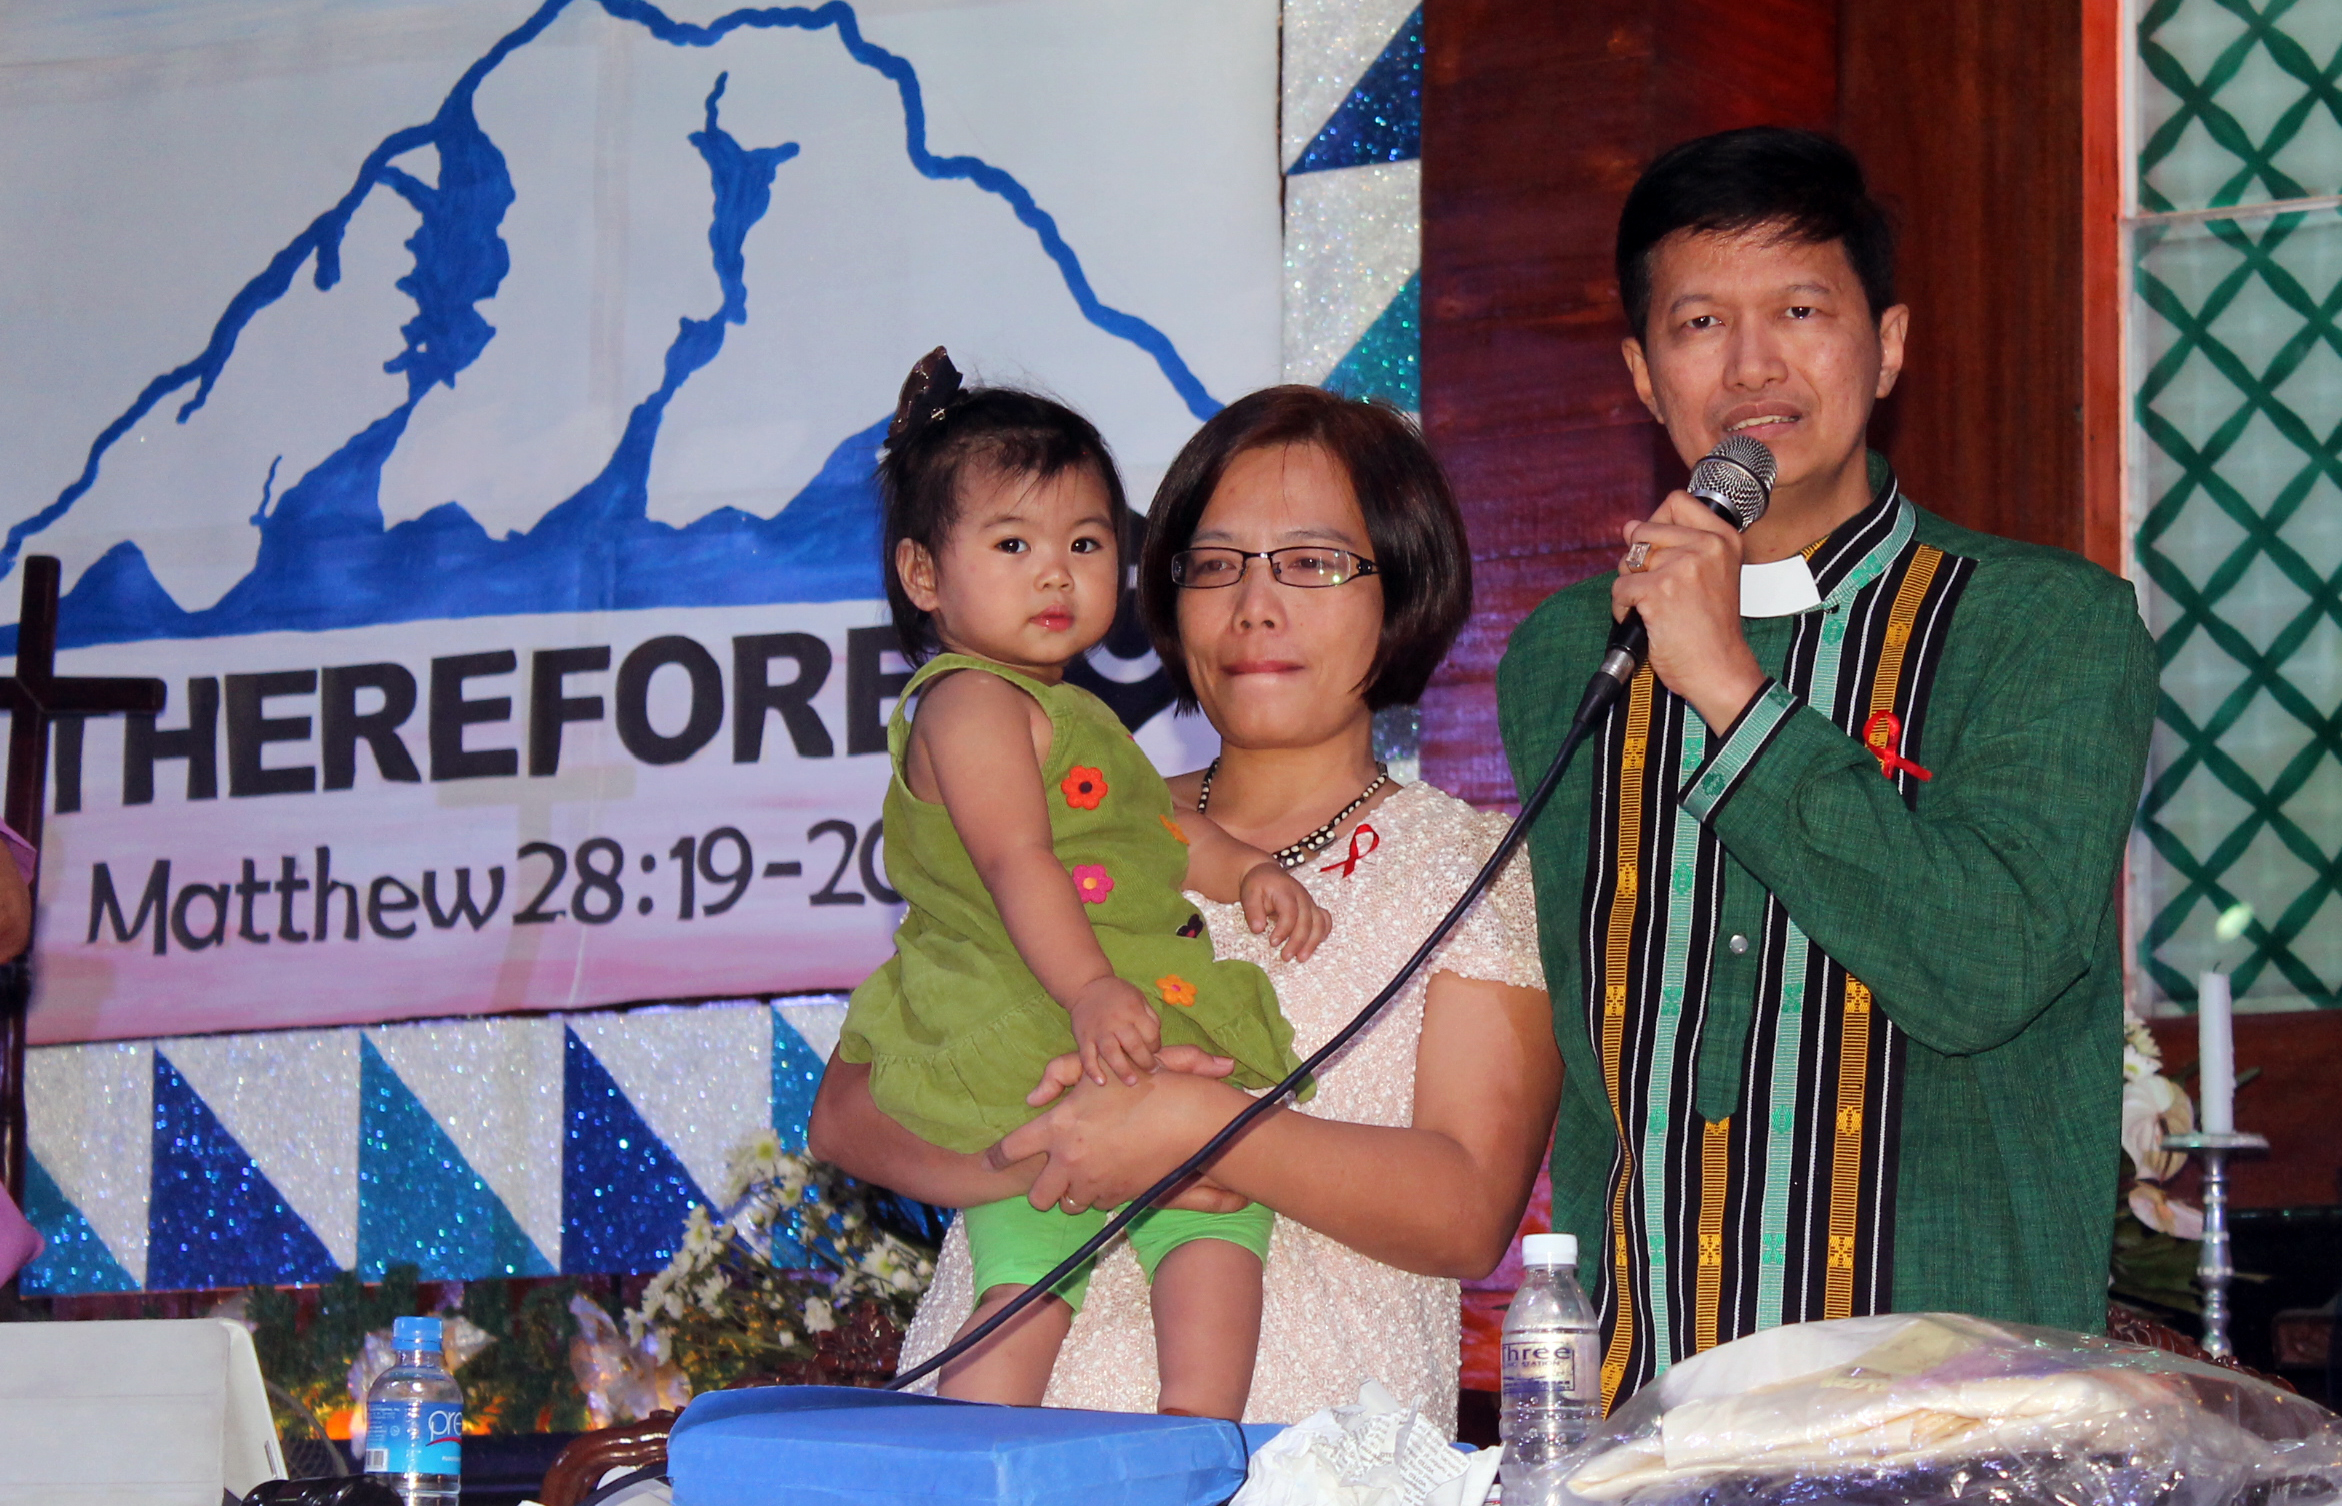 Torio re-elected bishop in the Philippines